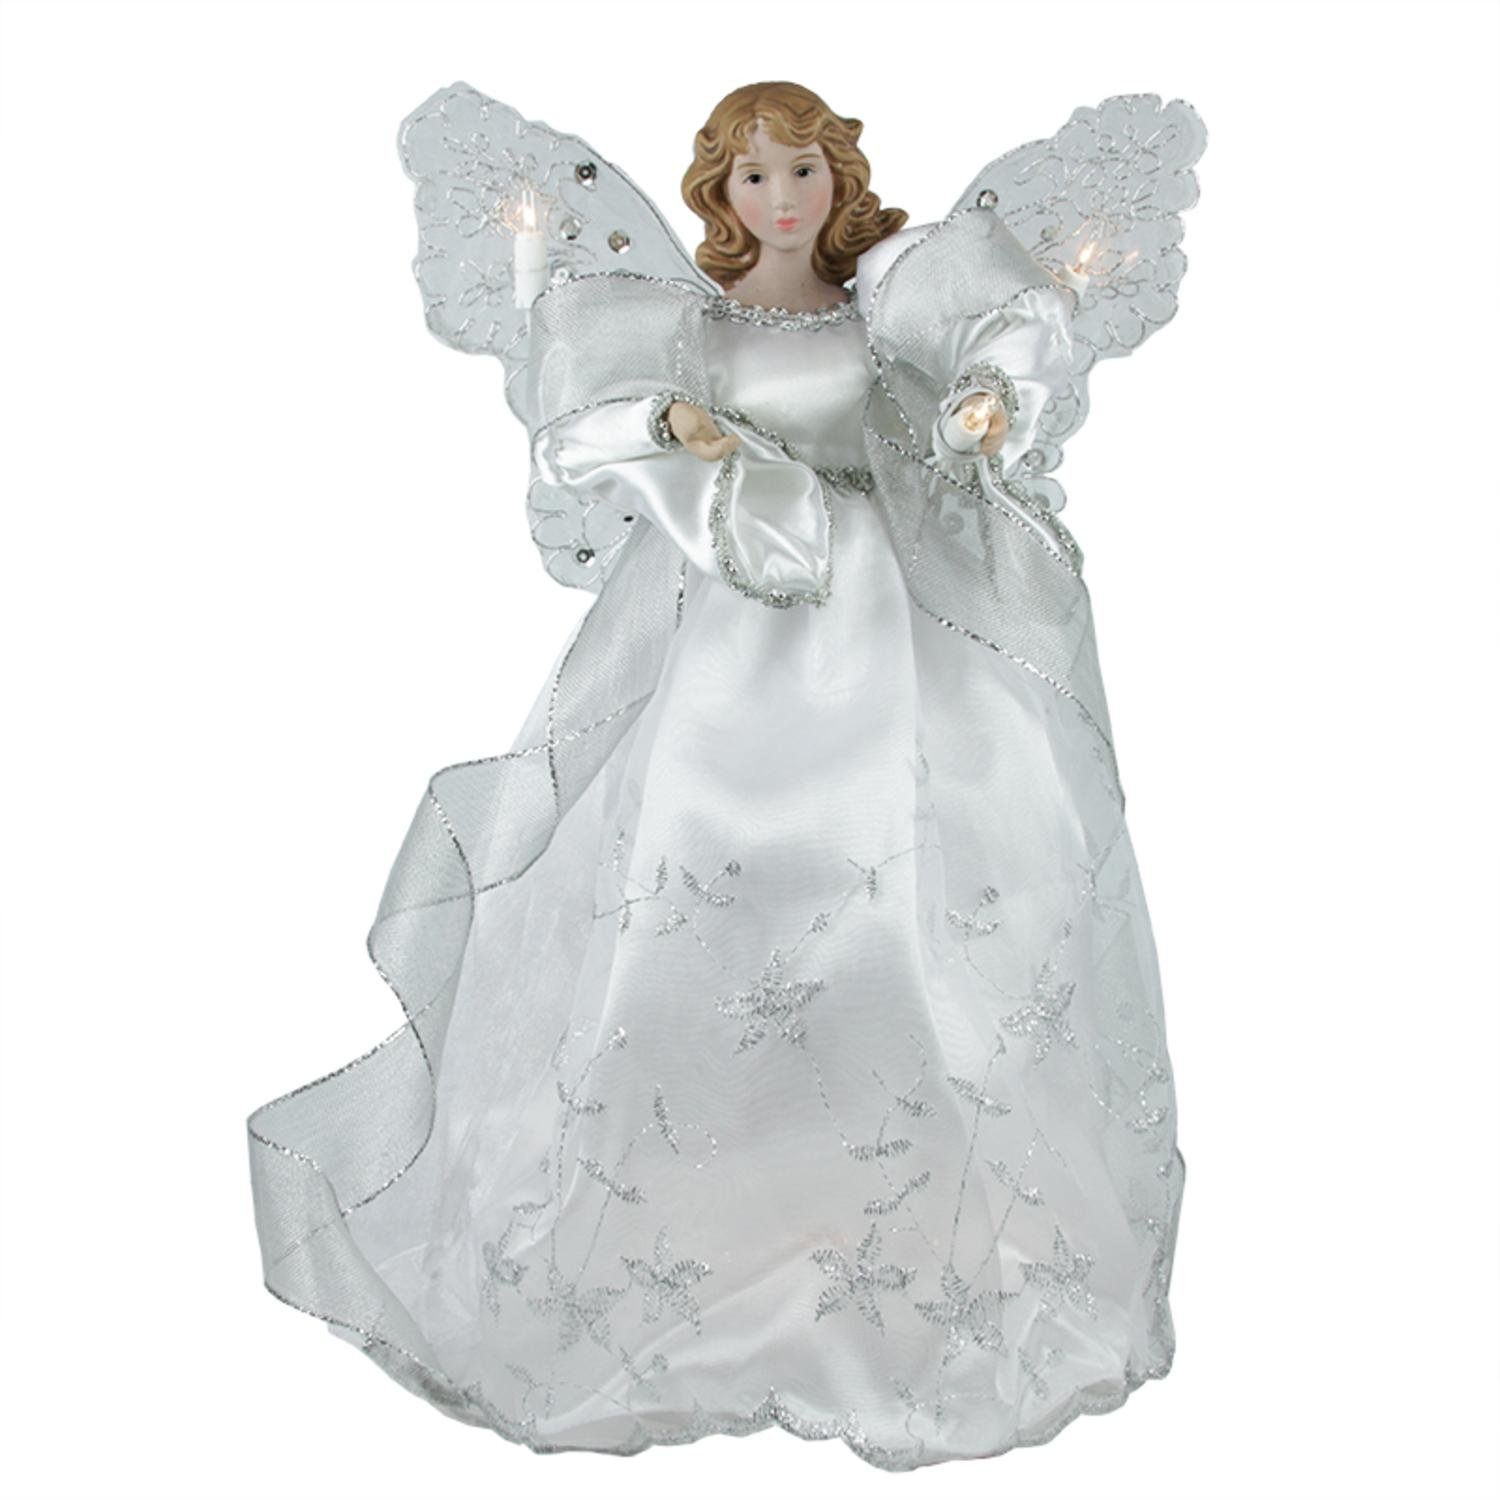 amazoncom 13 elegant silver and white lighted porcelain angel christmas tree topper home kitchen - Angel Christmas Tree